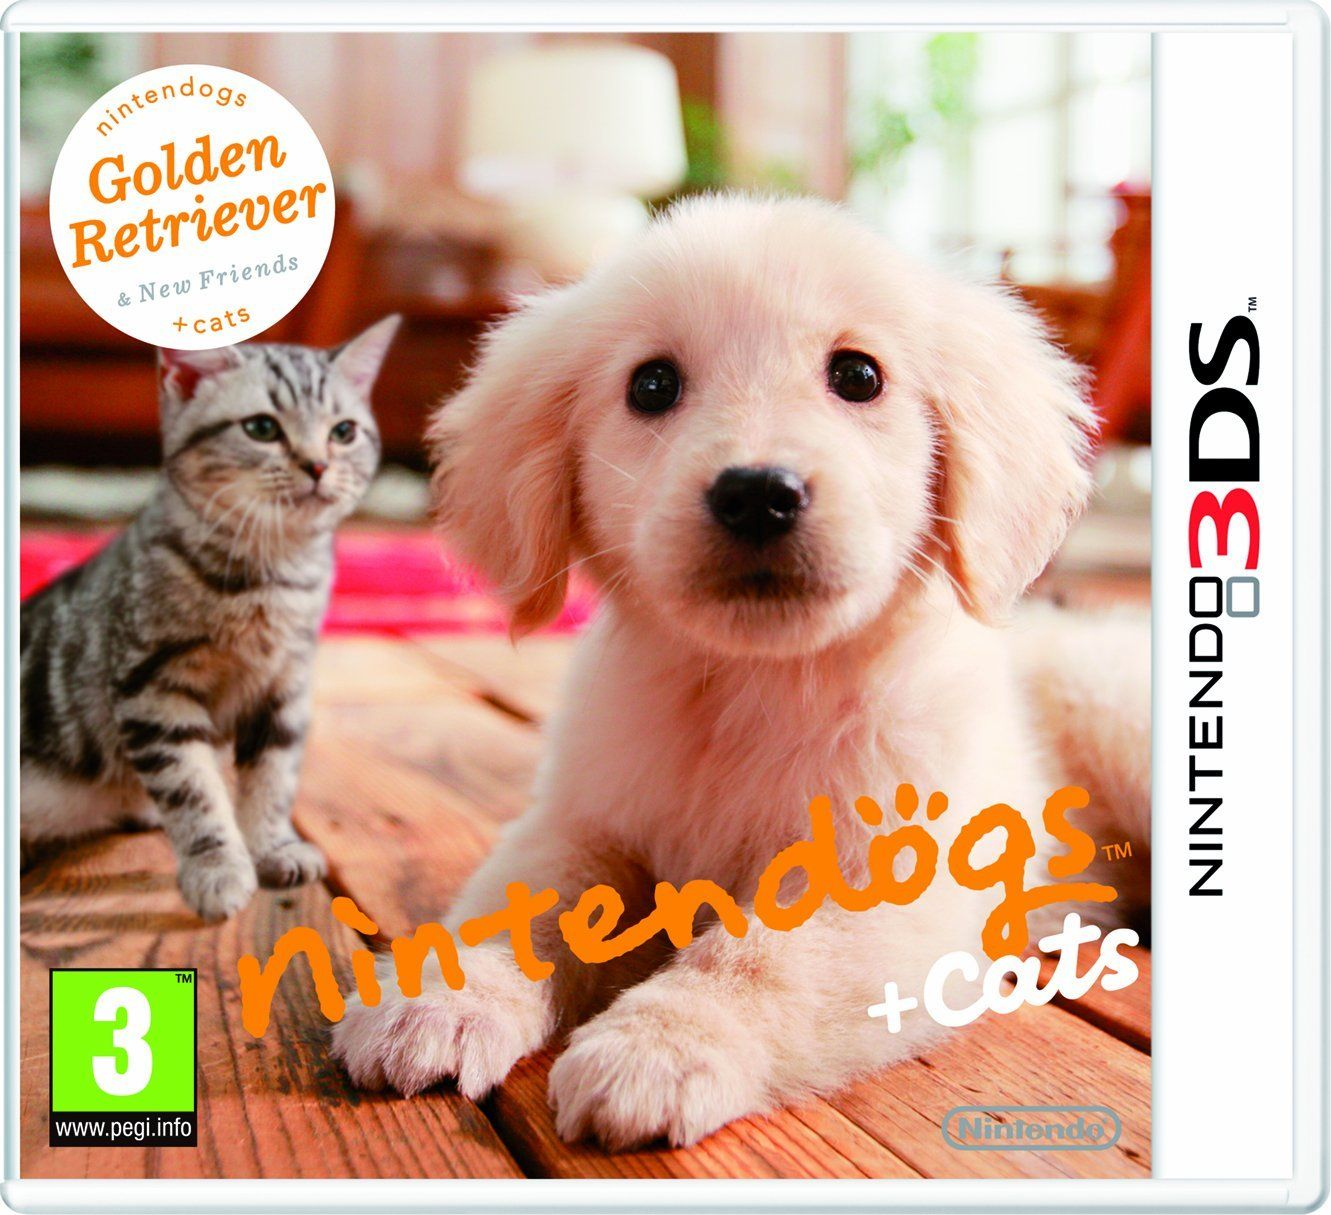 Nintendogs Cats Golden Retriever New Friends Nintendo 3ds